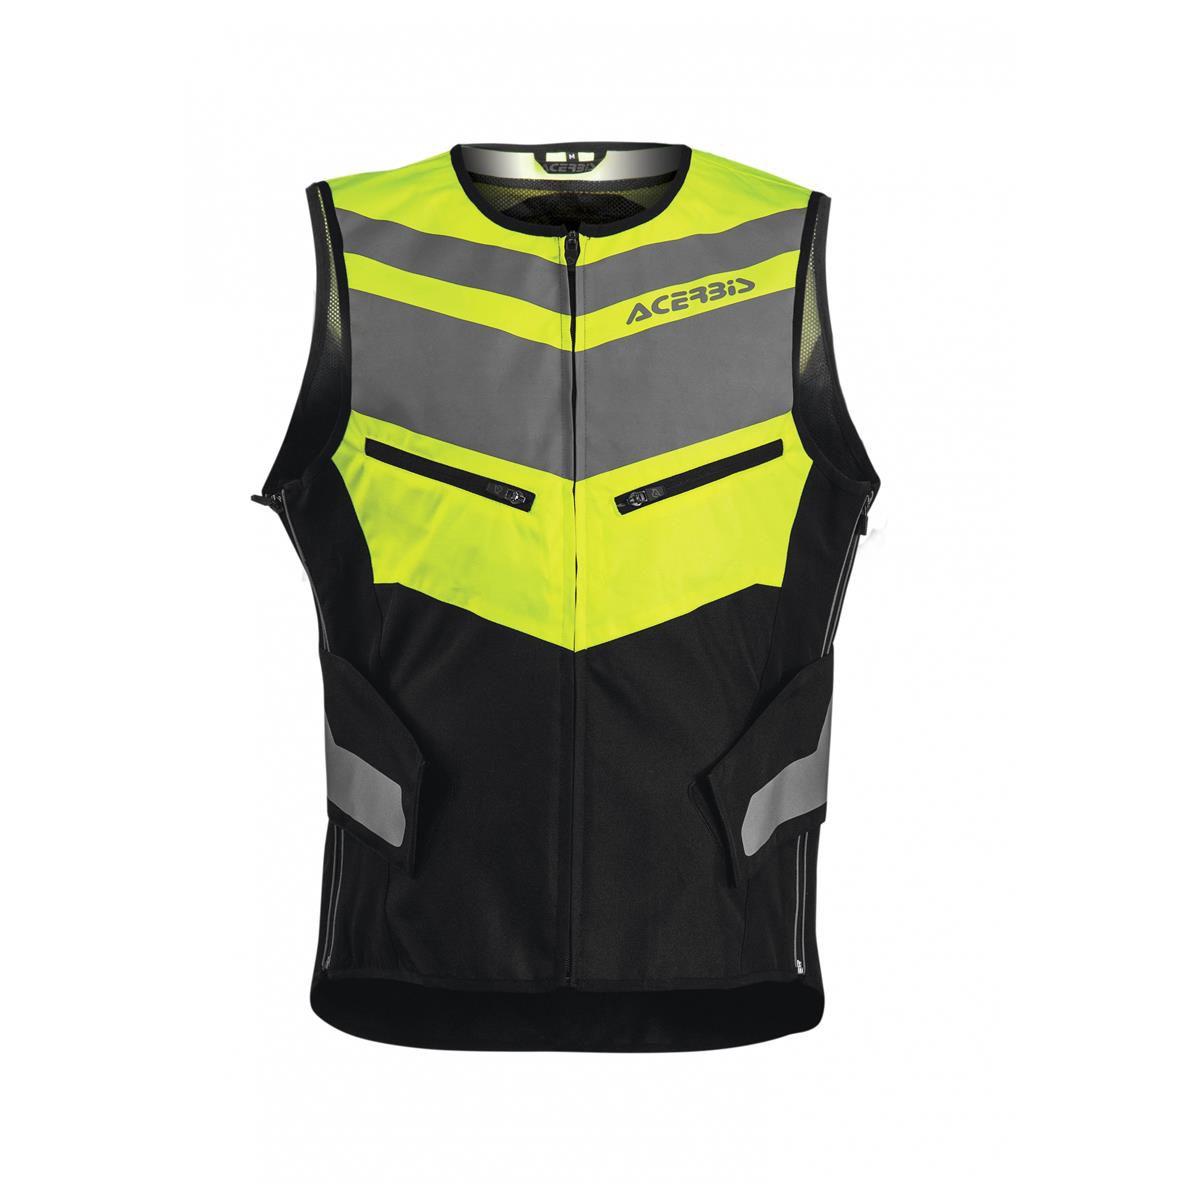 Highway Vest Short High Visibility ISO 20471 with Back Protector Size S/M